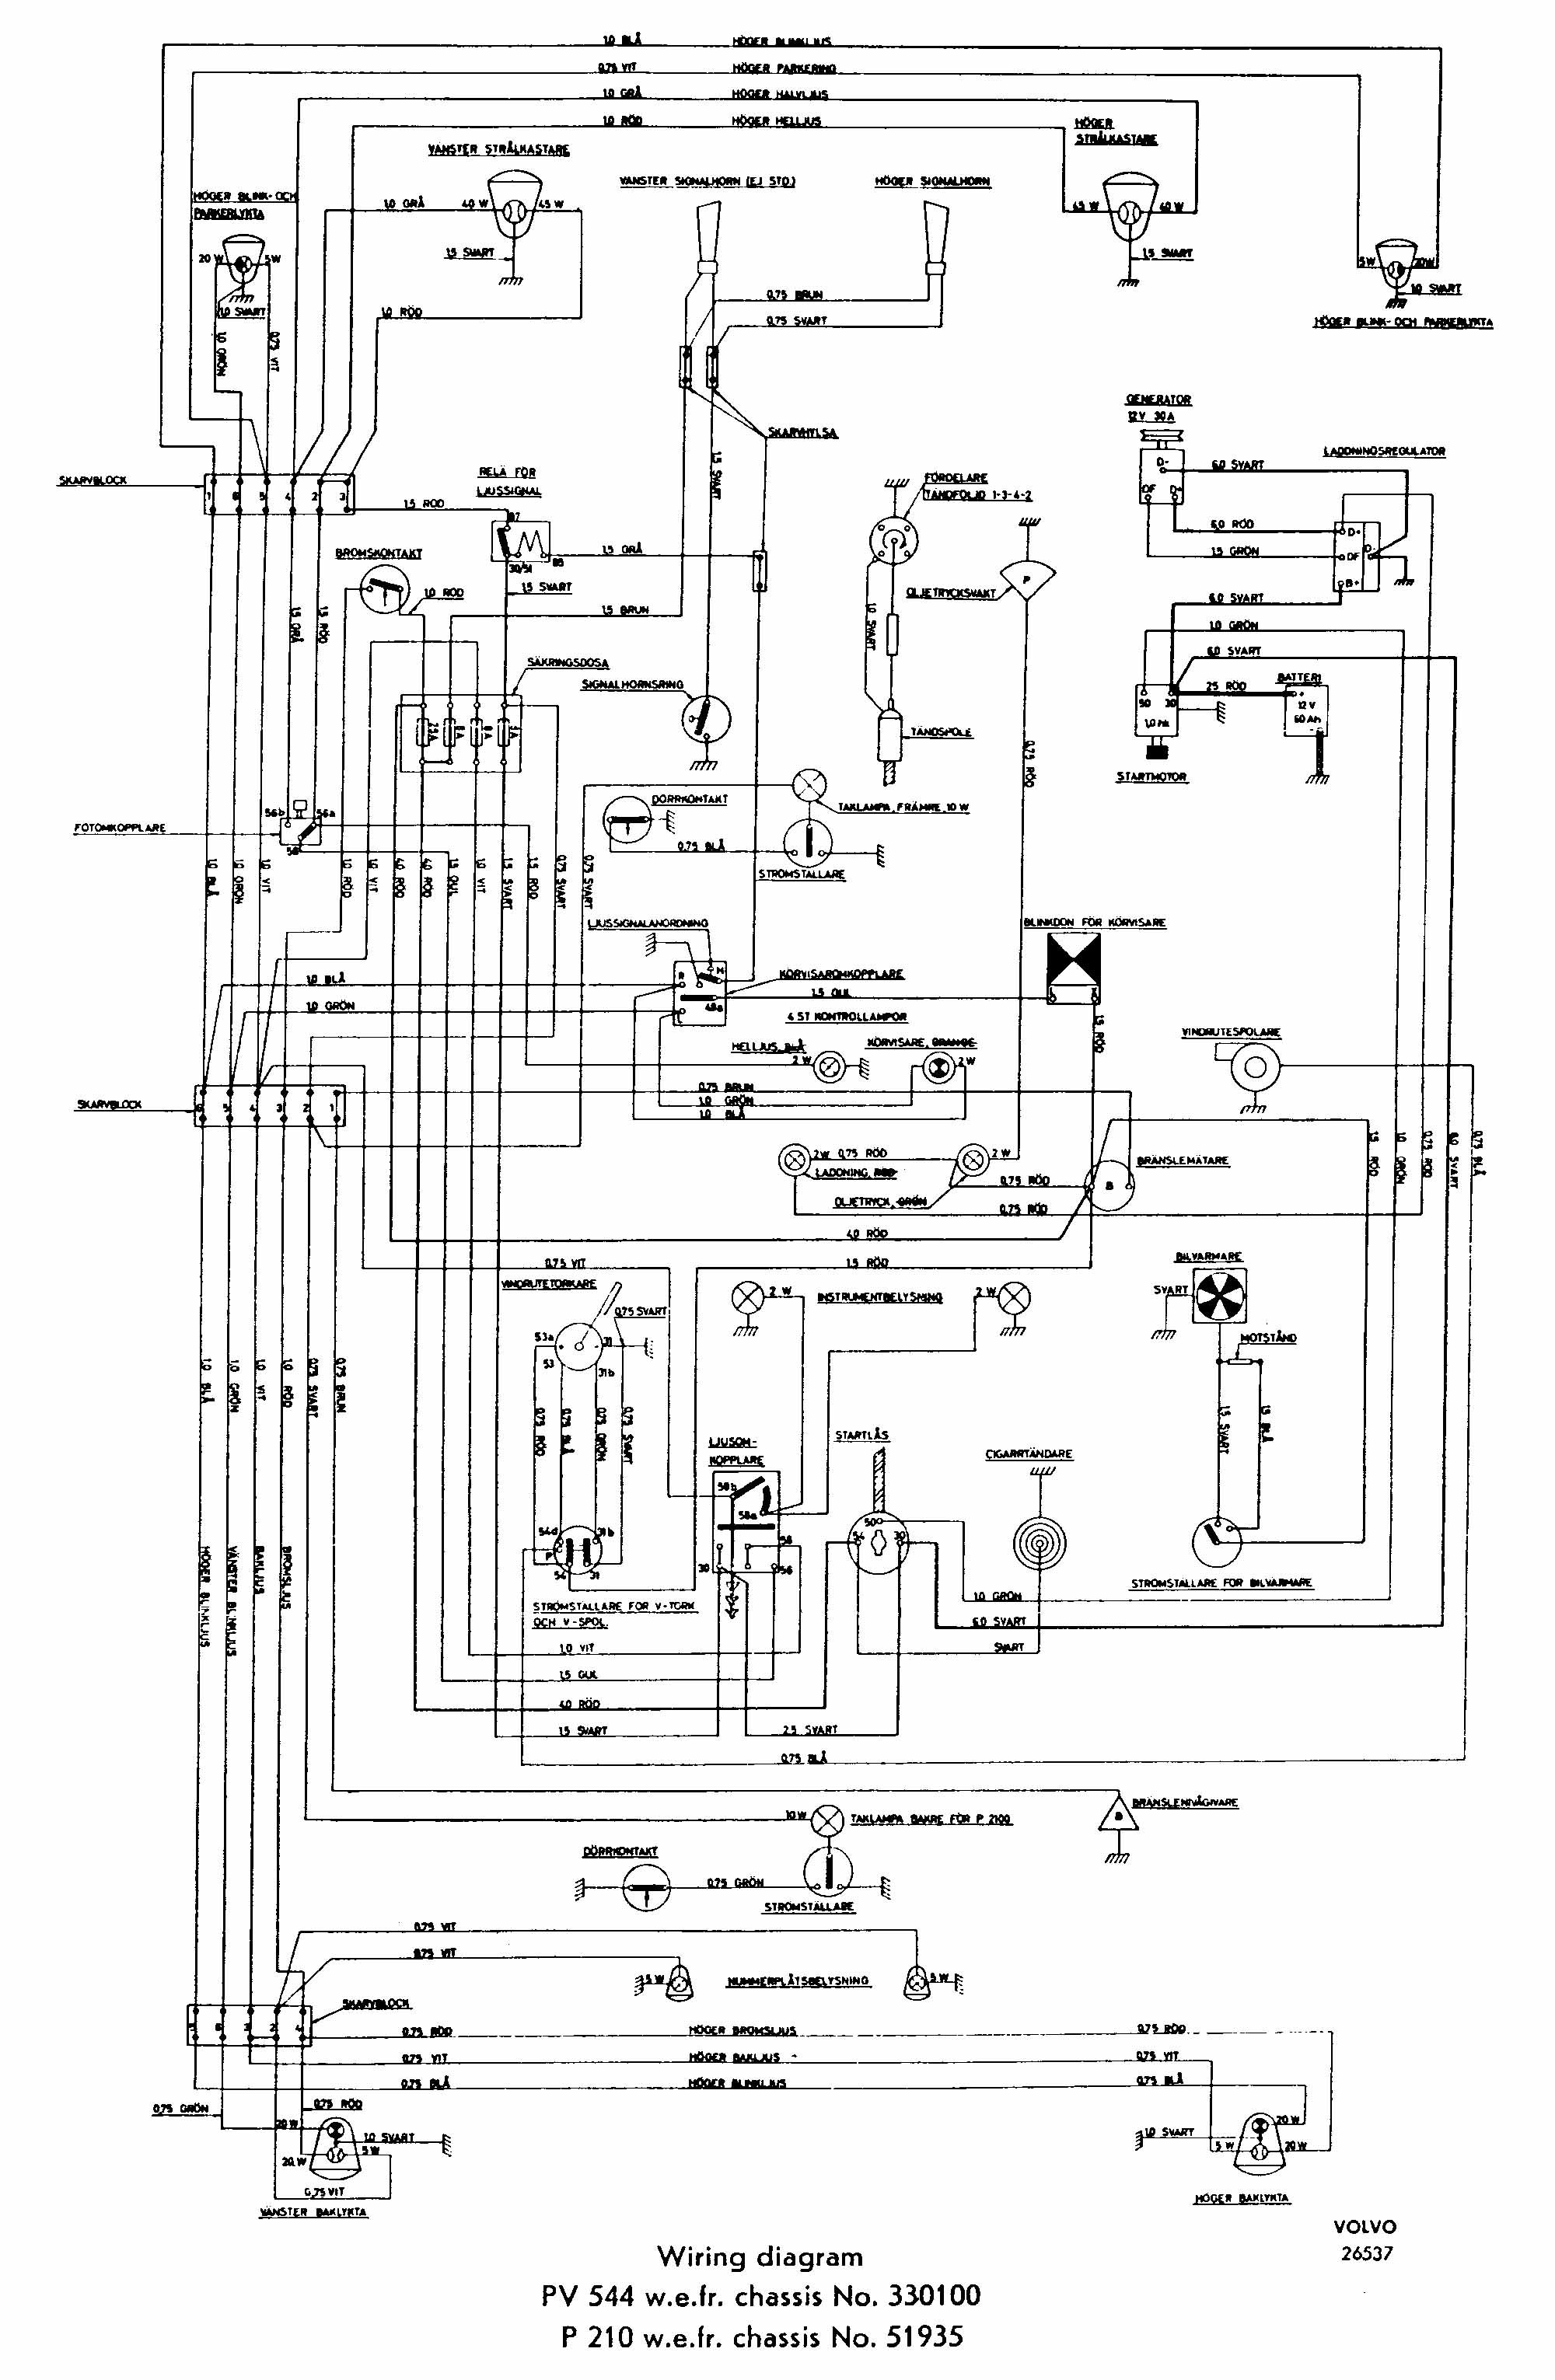 Cigarette Lighter Wiring Diagram Page 5 And Cigar 2004 Car Sw Em Fuses Allocation Troubleshooting Of